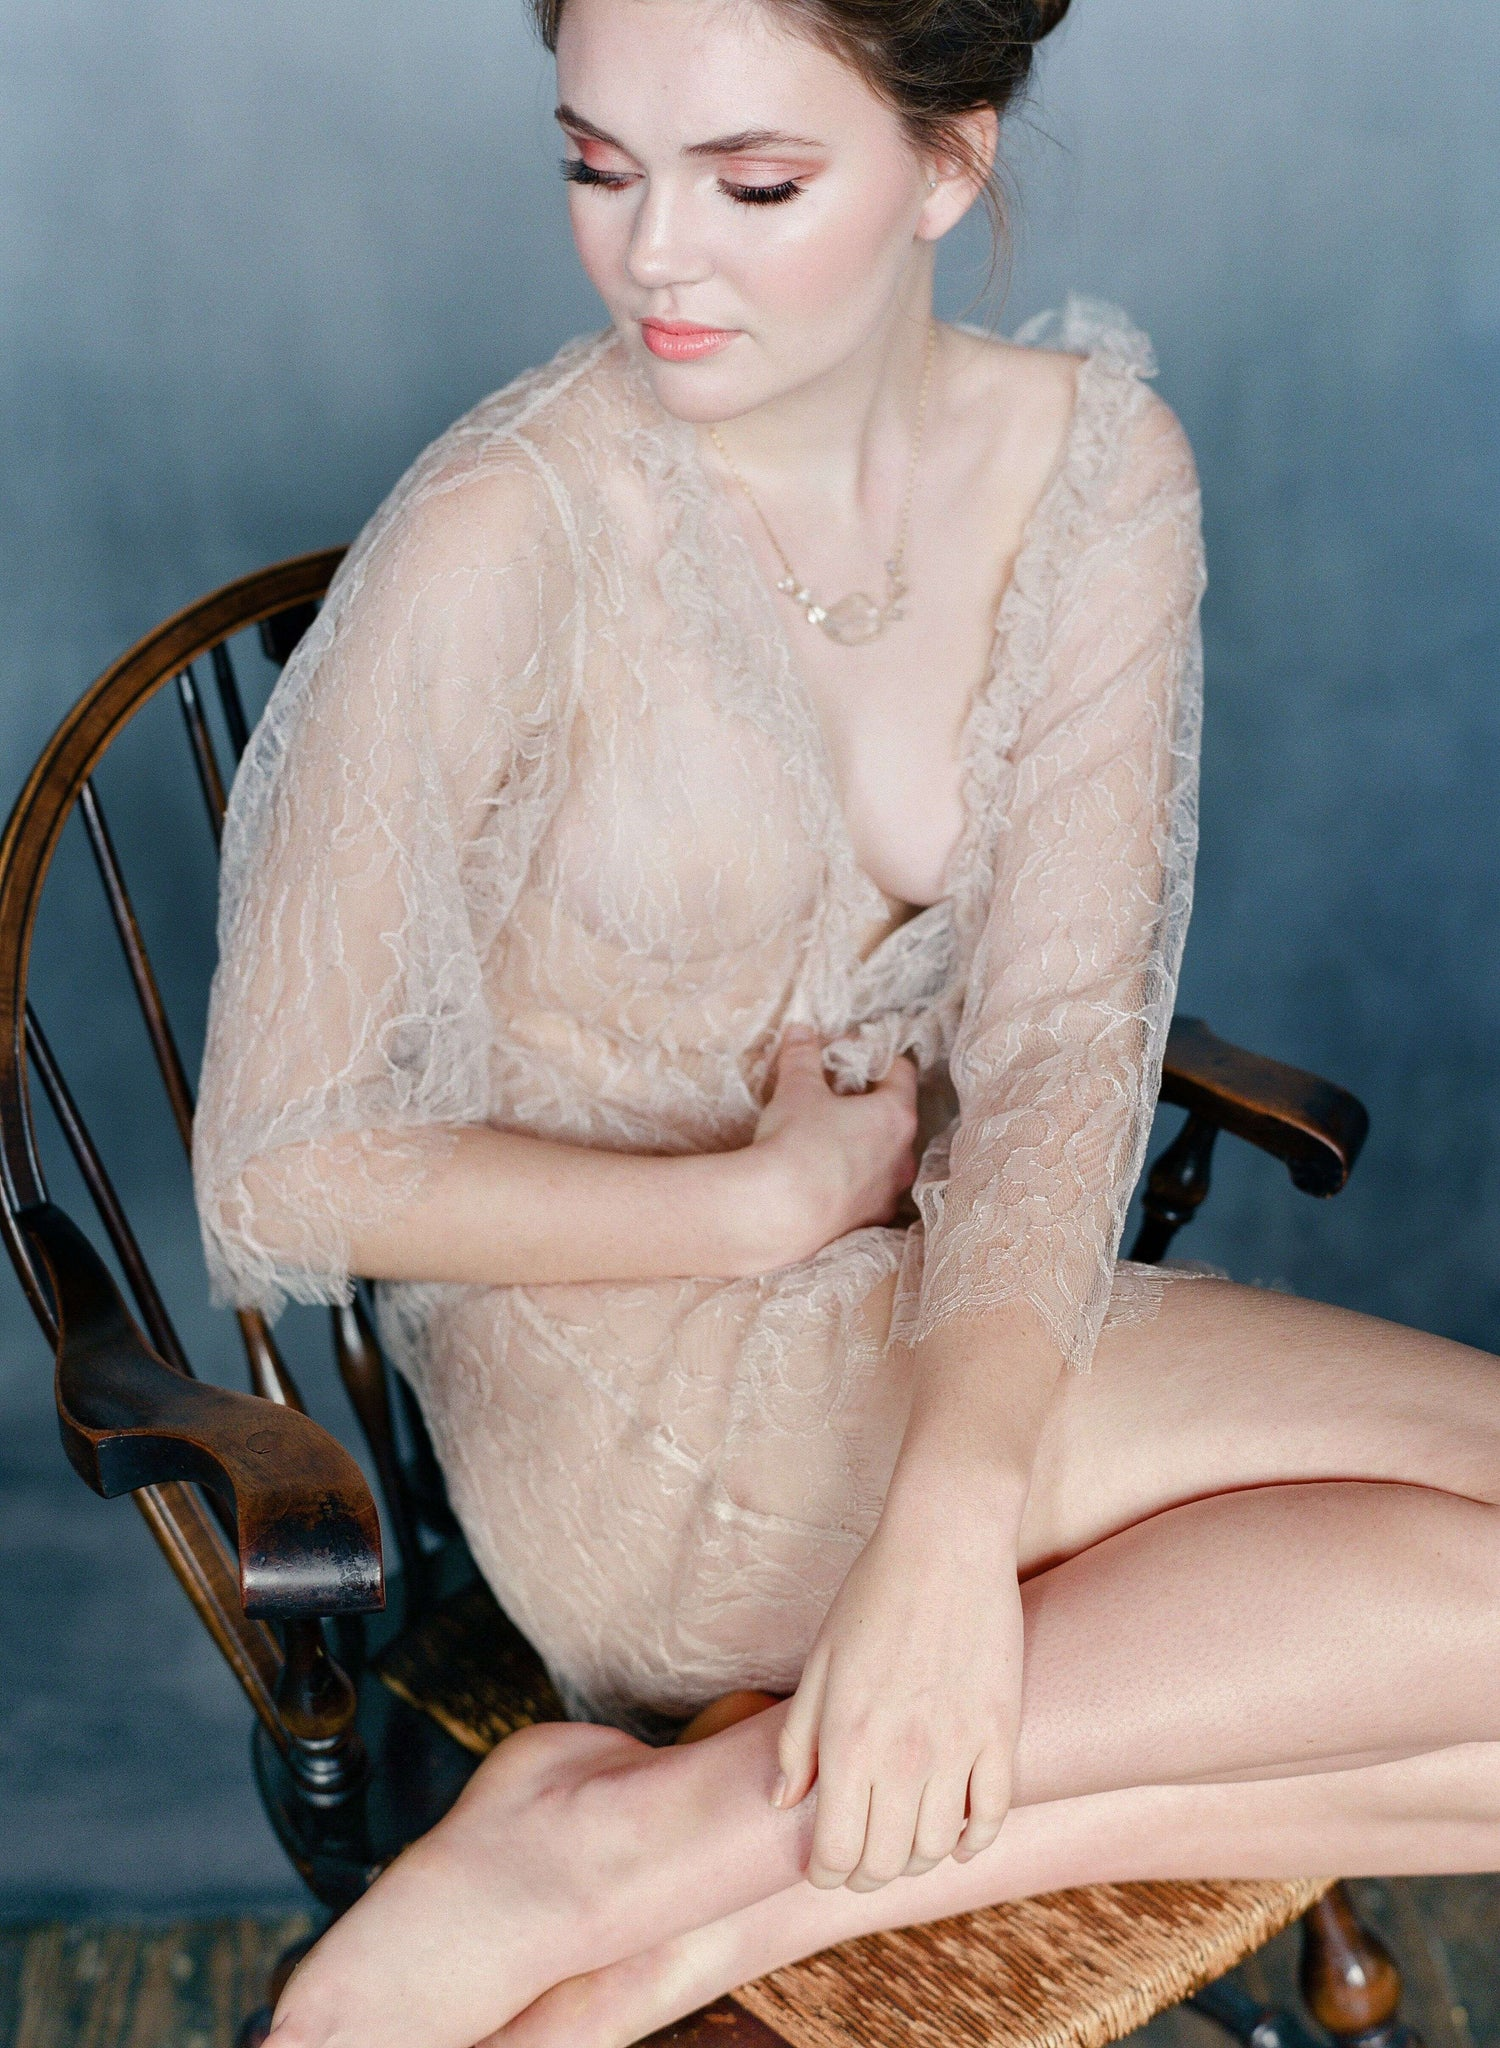 Women sitting in chair wearing blush lace robe